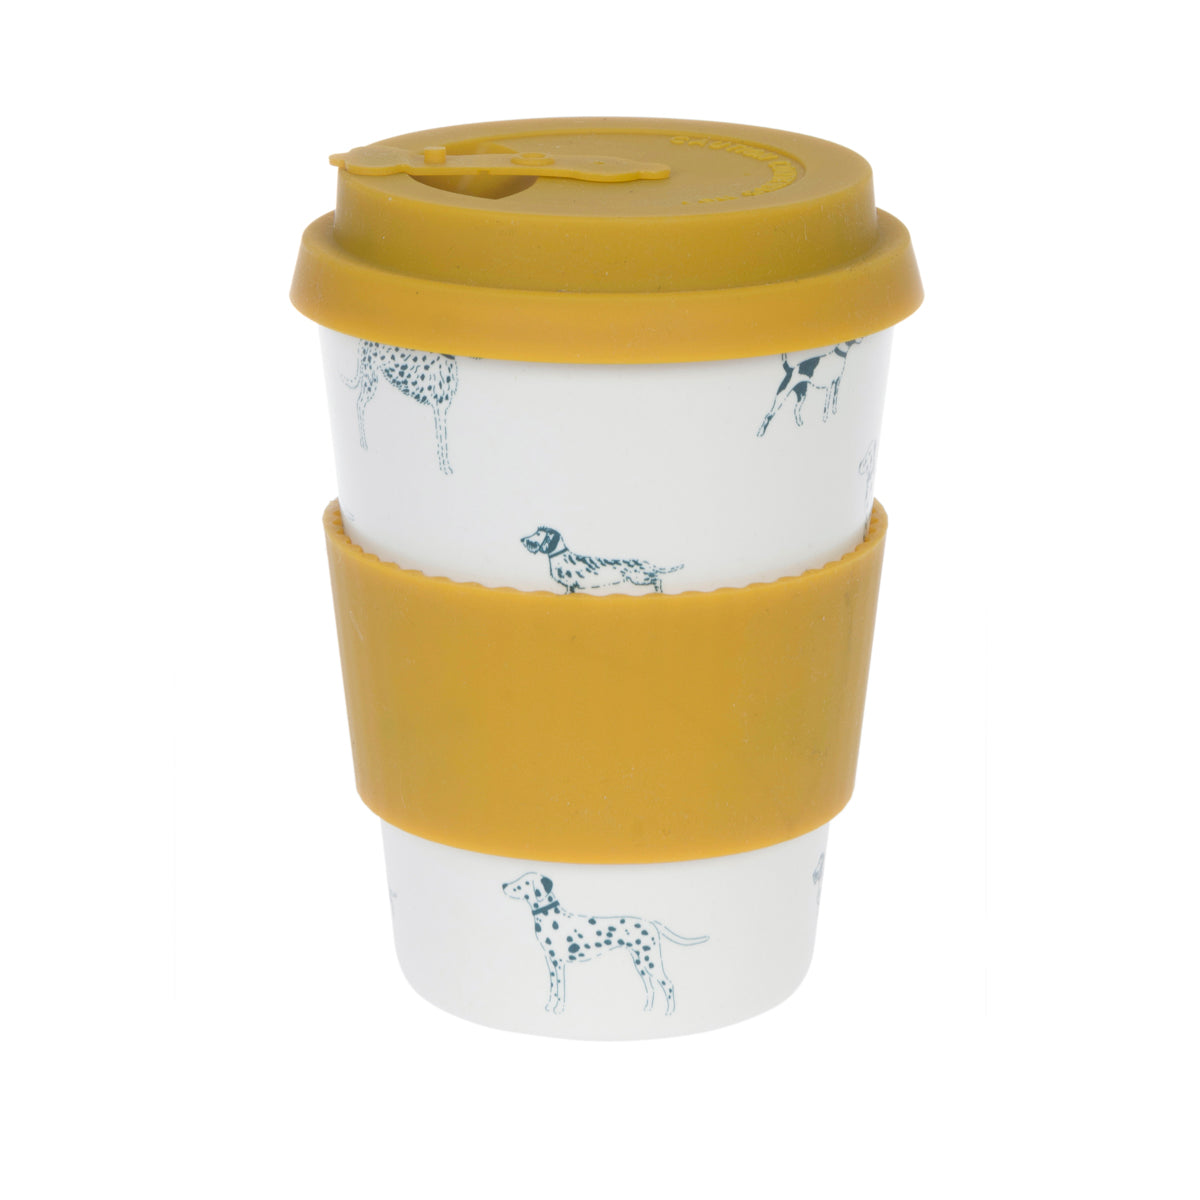 Fetch Bamboo Travel Mug by Sophie Allport